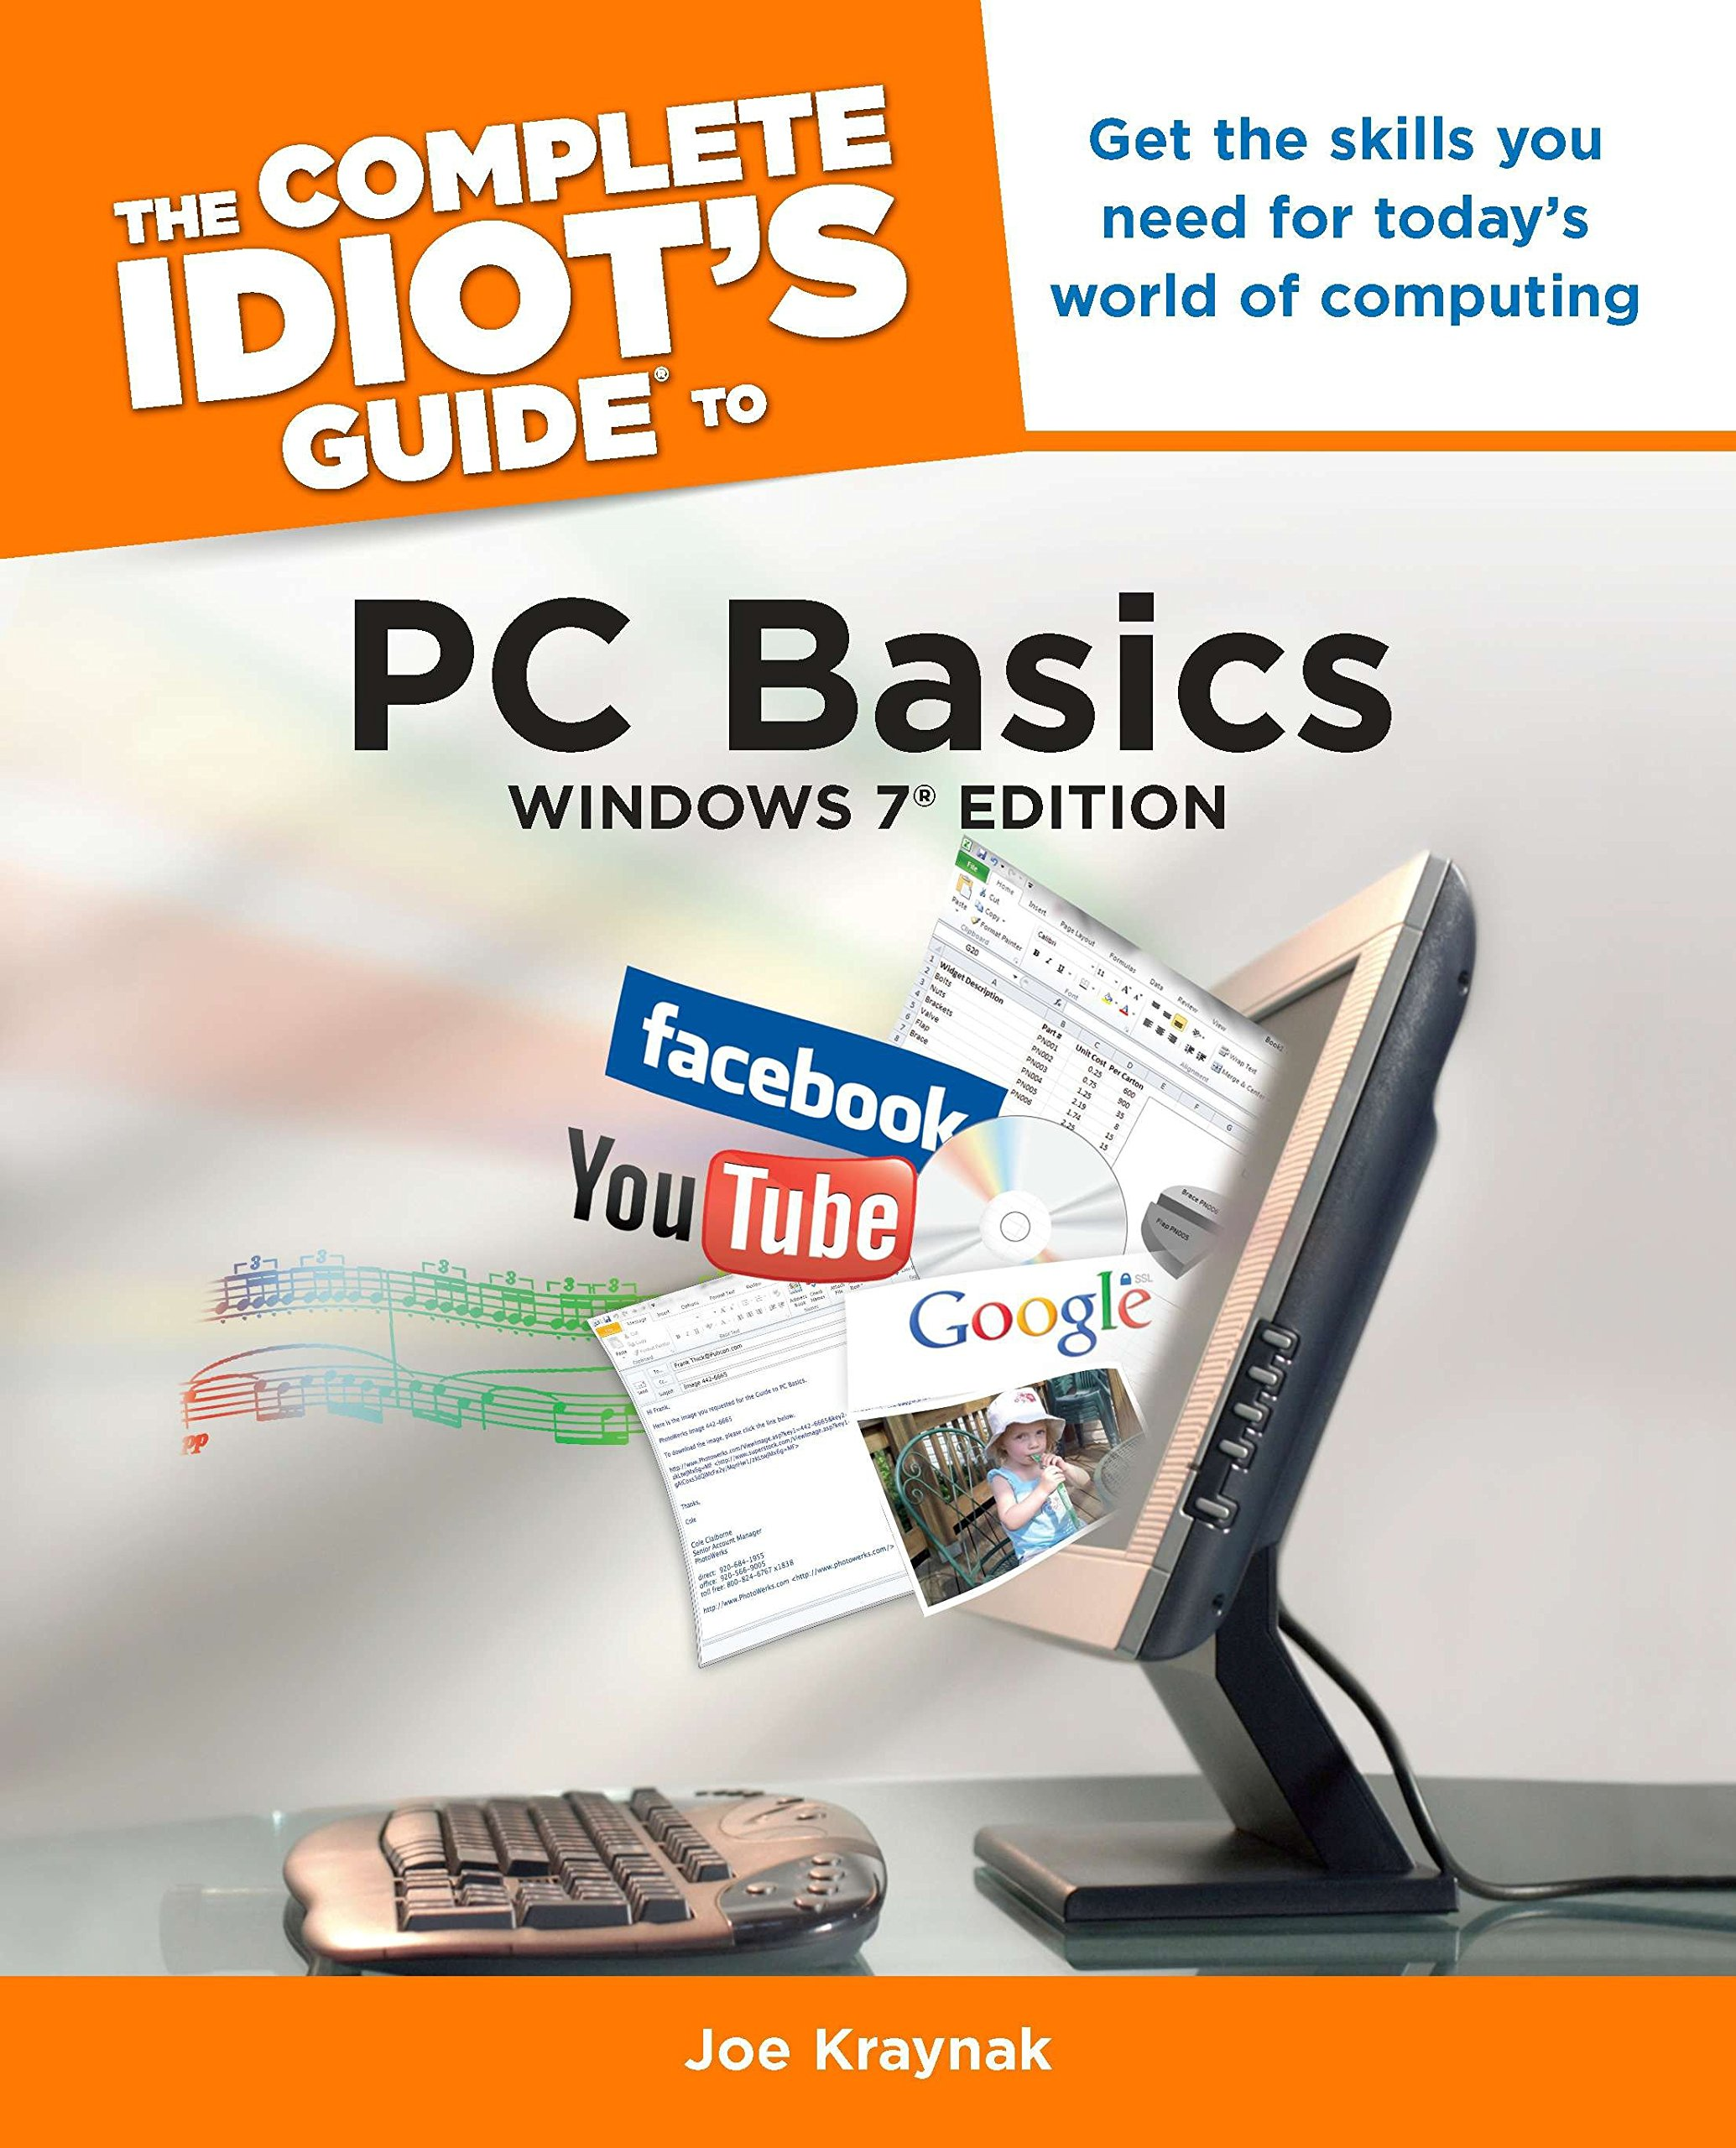 The Complete Idiot's Guide to PC Basics, Windows 7 Edition: Get the Skills You Need for Today s World of Computing